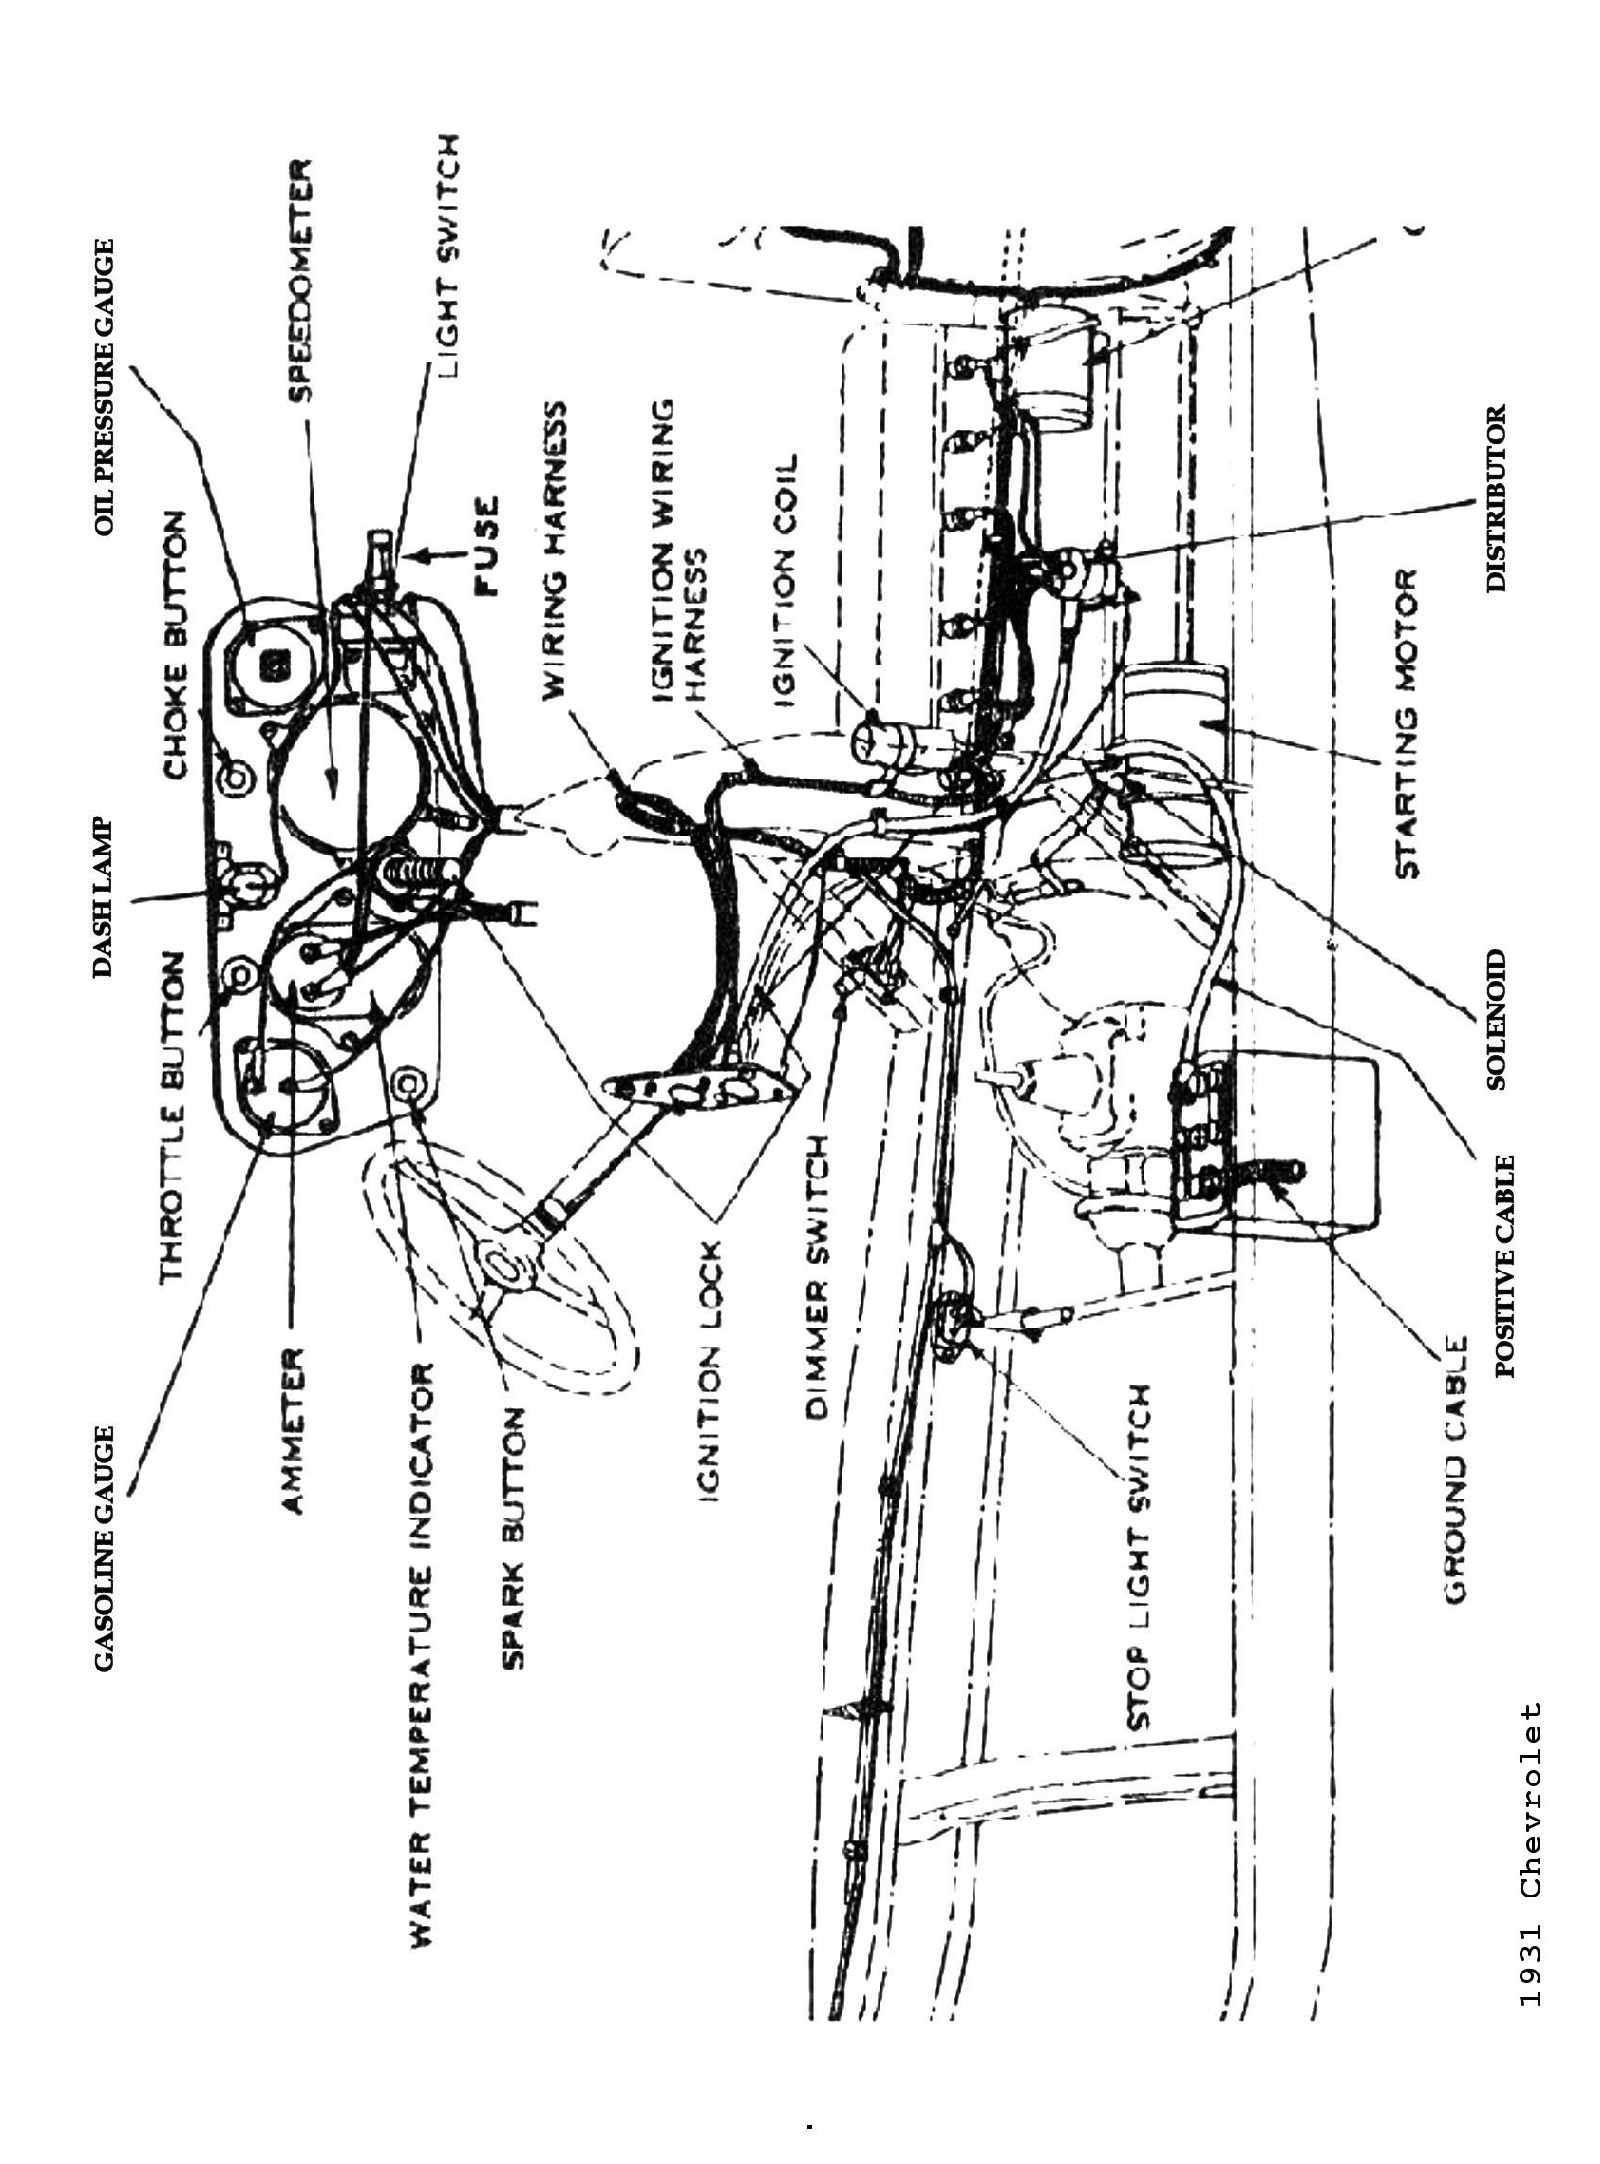 1930 Ford Coupe Wiring Diagram - Auto Electrical Wiring Diagram •